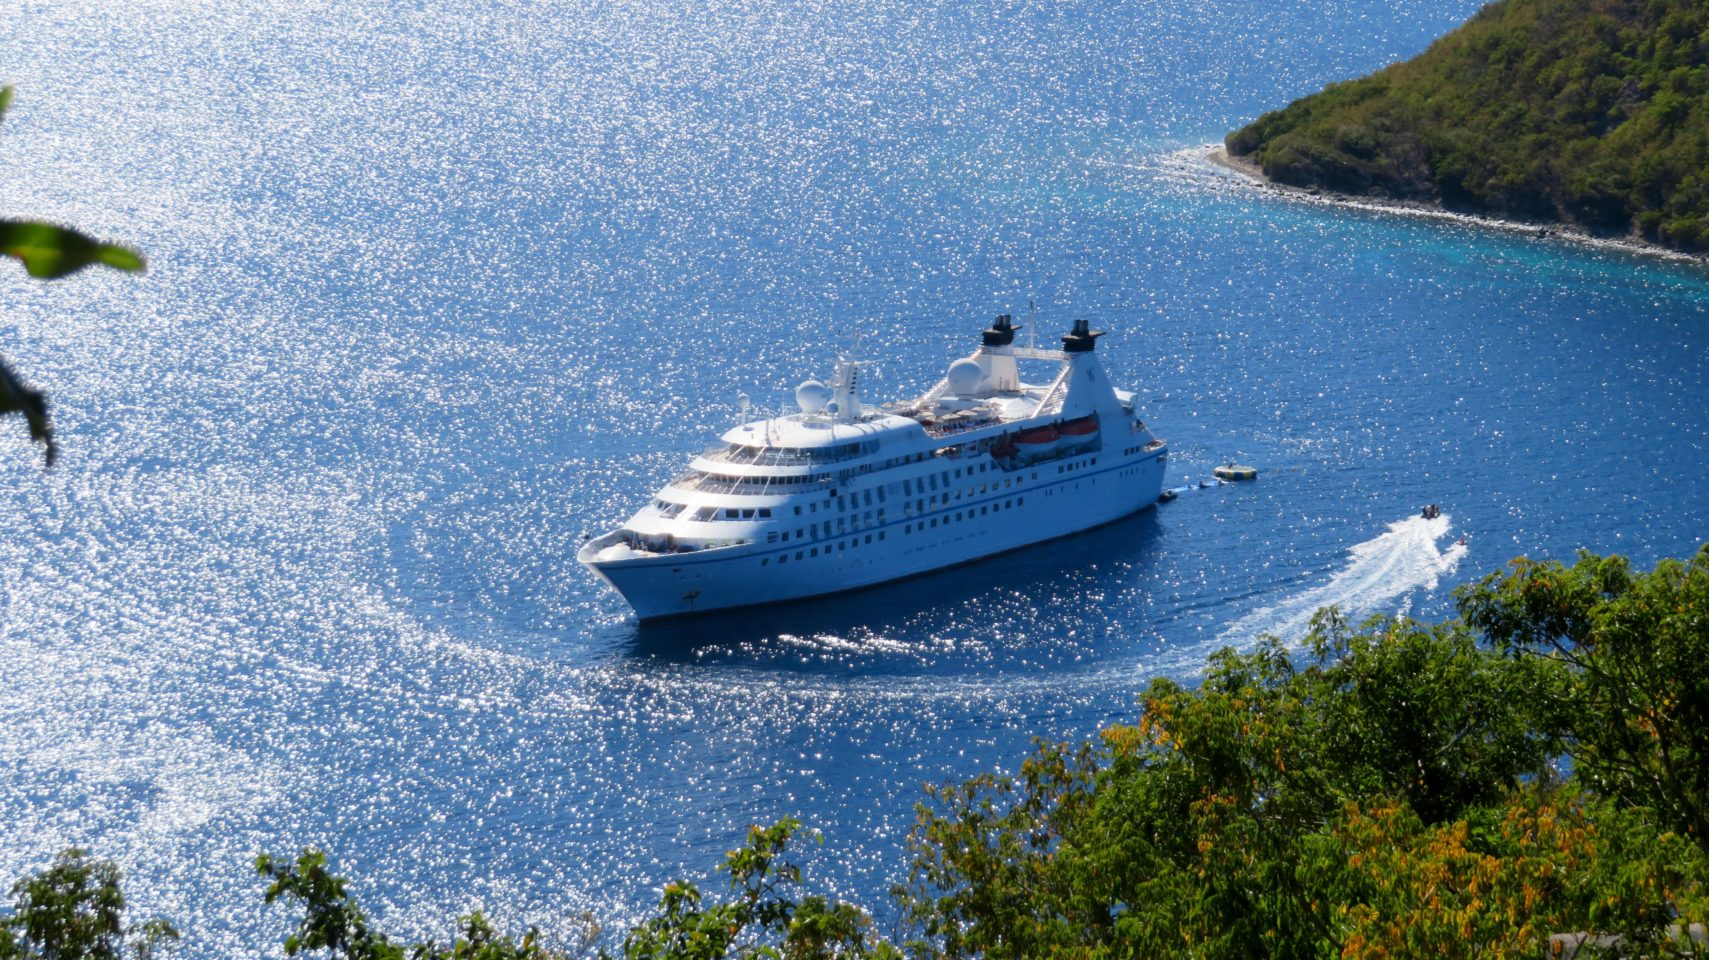 Windstar Cruises Star Legend in Baie des Saintes, Guadeloupe